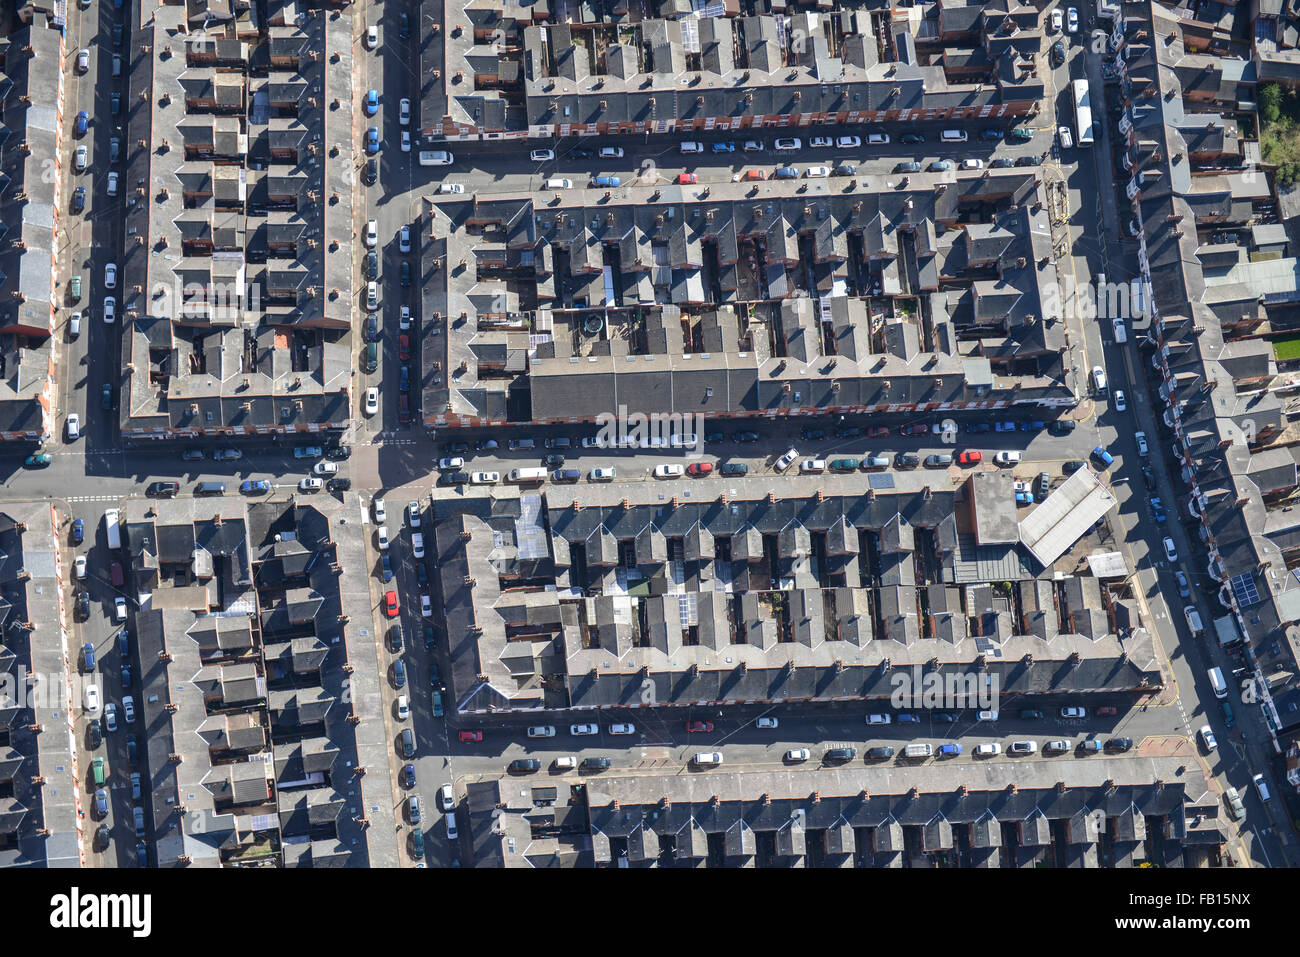 An abstract aerial view of the inner-city area Spinney Hills in Leicester - Stock Image